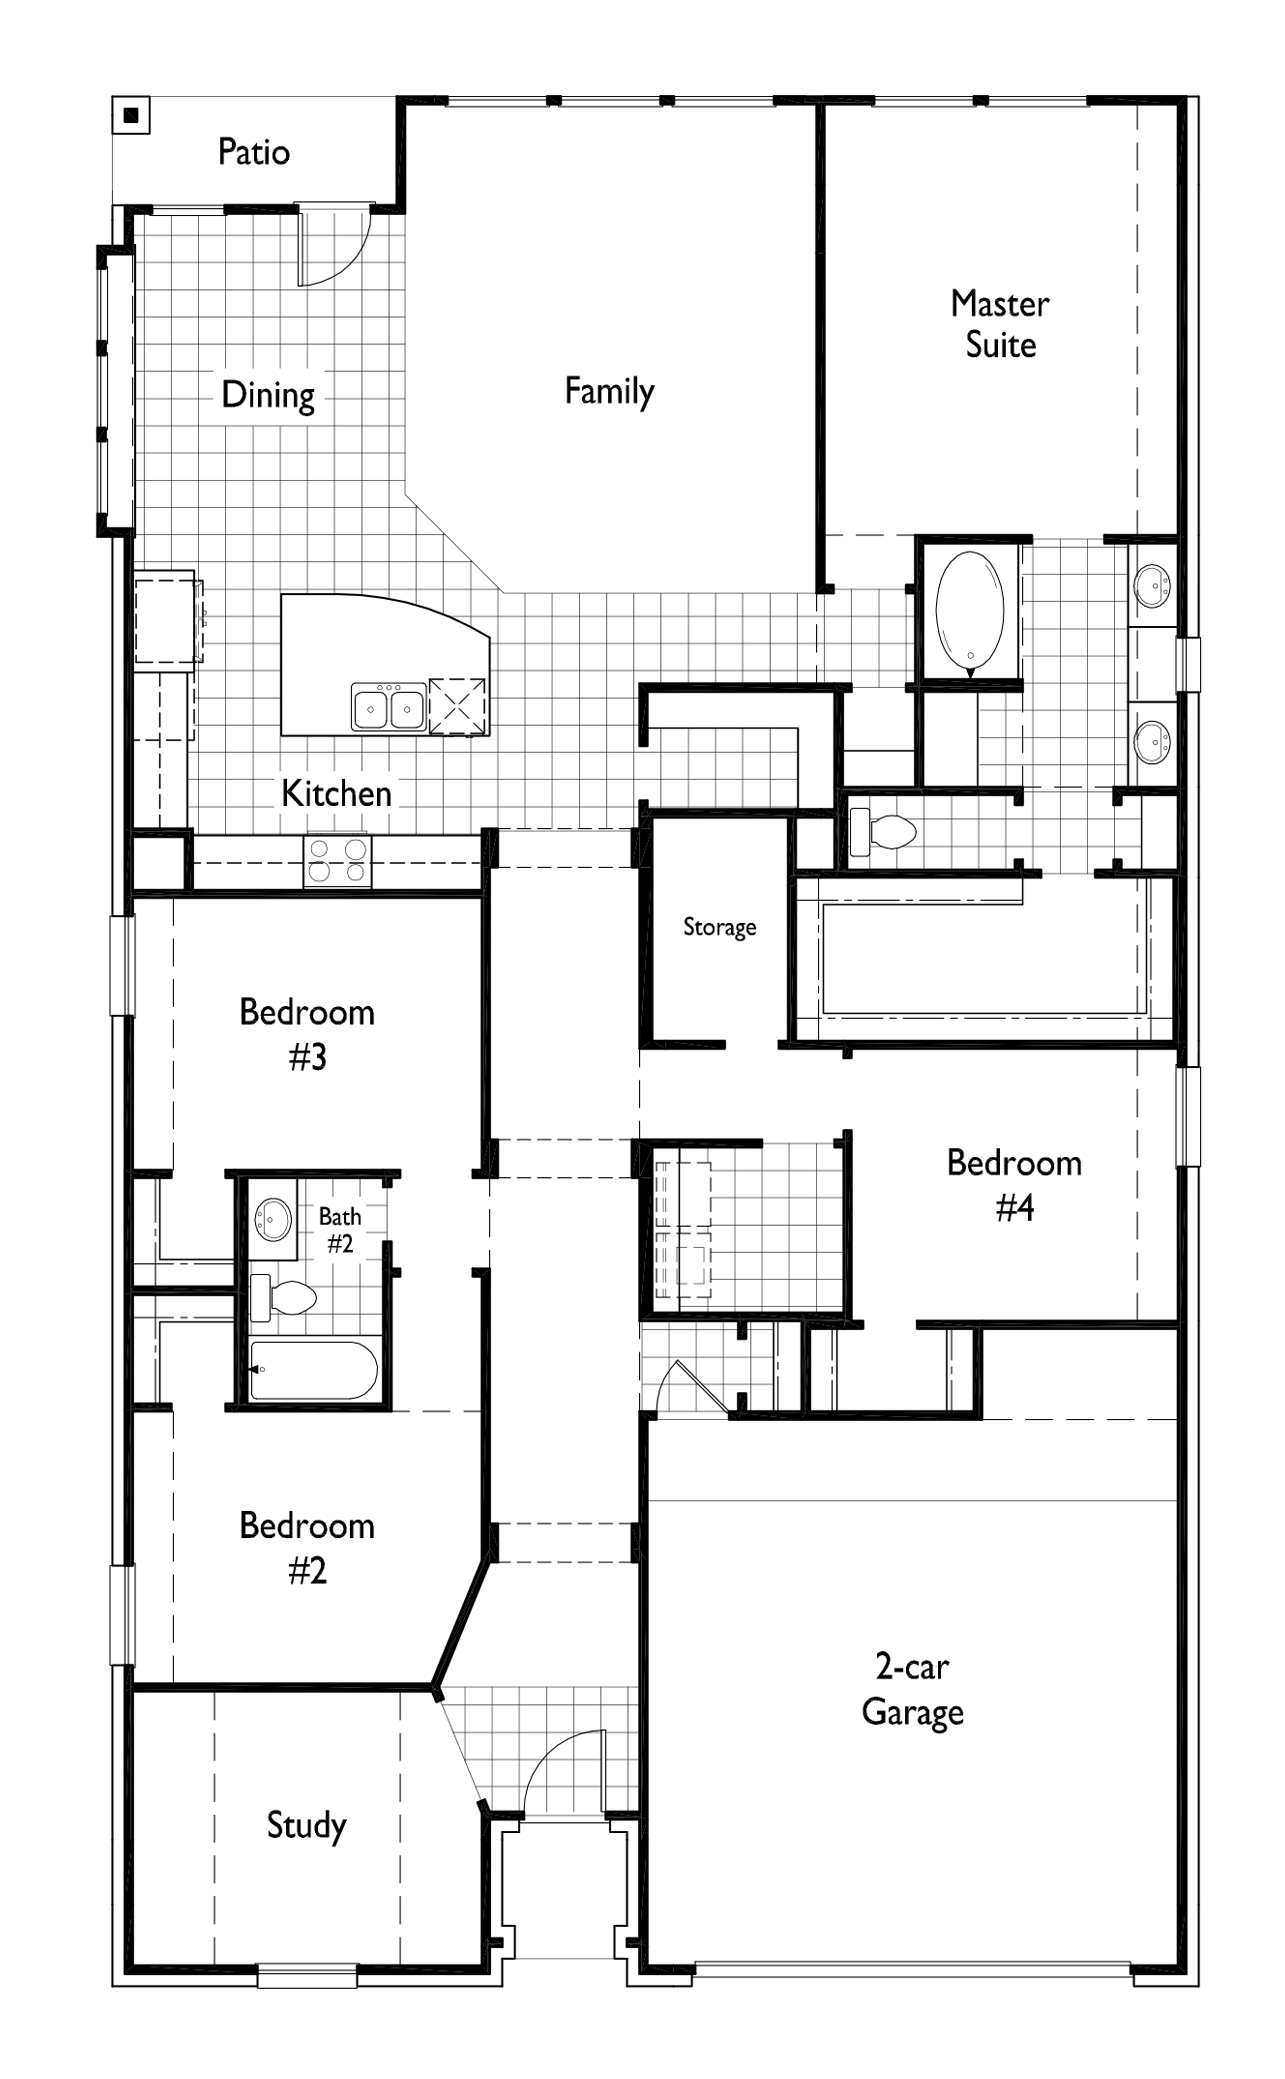 New home plan davenport in denison tx 75020 highland homes ccuart Images